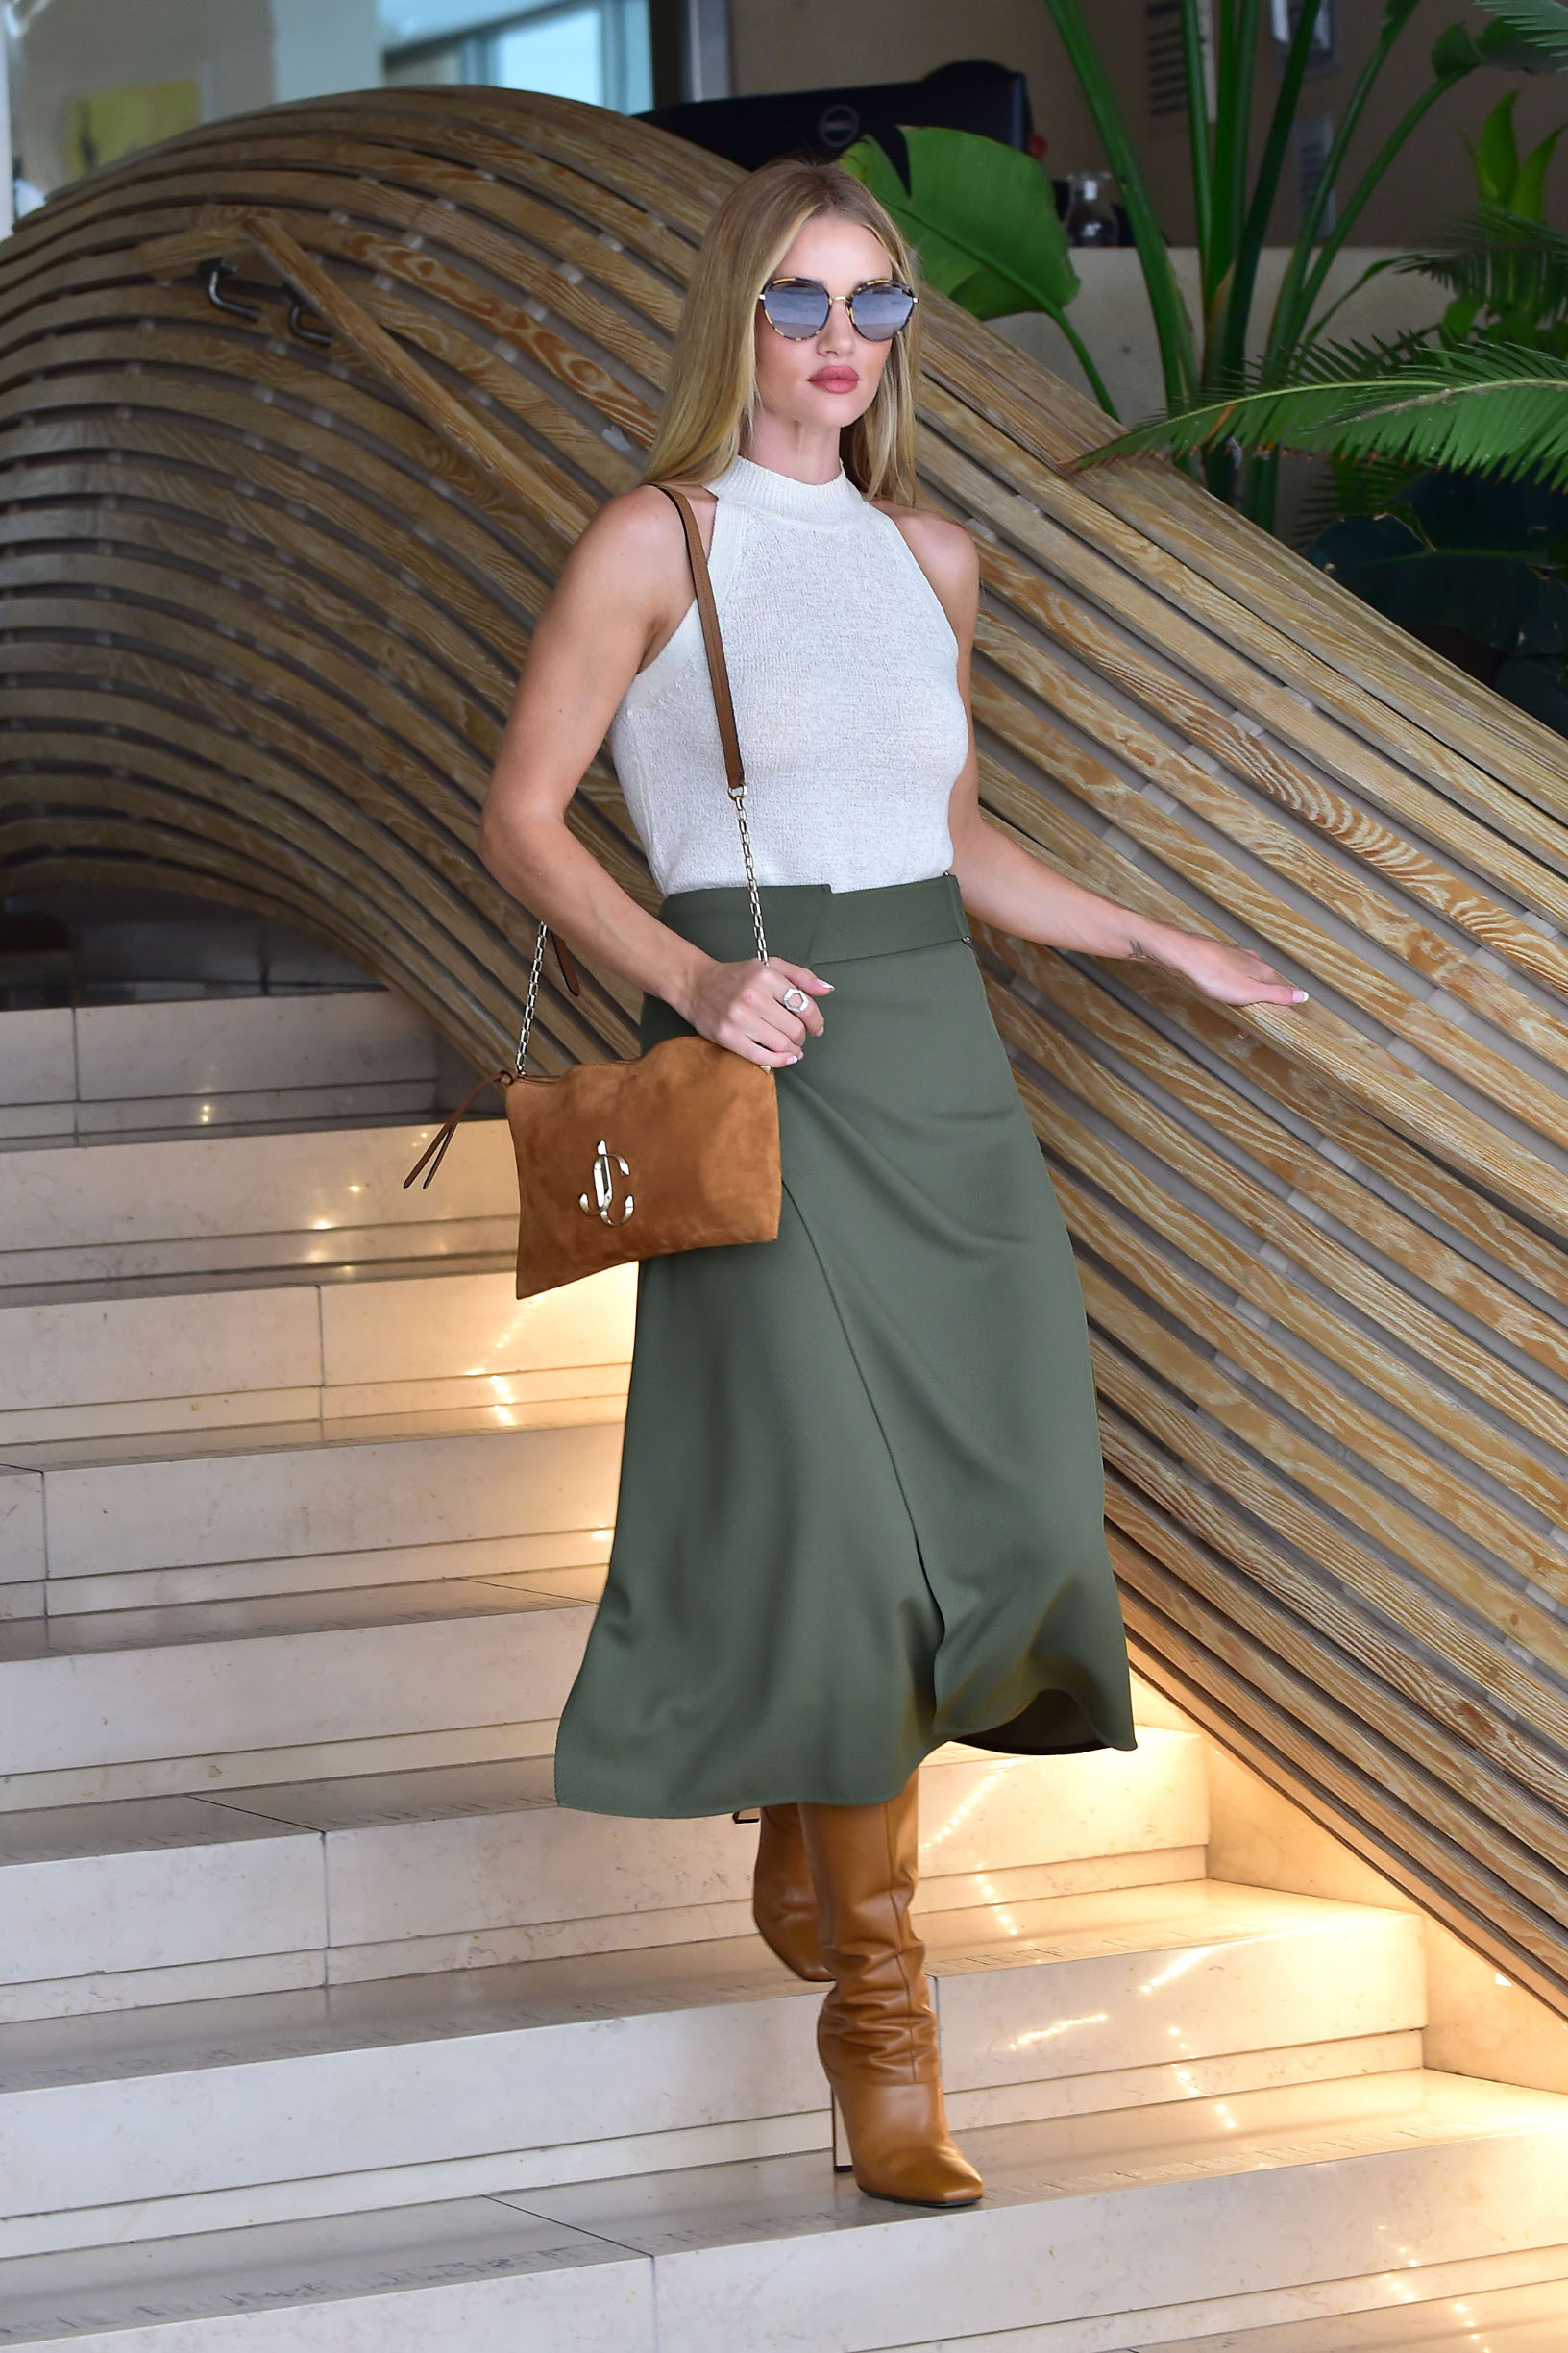 - Beverly Hills, CA - 09/11/2019 - Rosie Huntington-Whiteley arriving to an office building in Beverly Hills.  -PICTURED: Rosie Huntington-Whiteley -, Image: 470545999, License: Rights-managed, Restrictions: , Model Release: no, Credit line: Profimedia, INSTAR Images